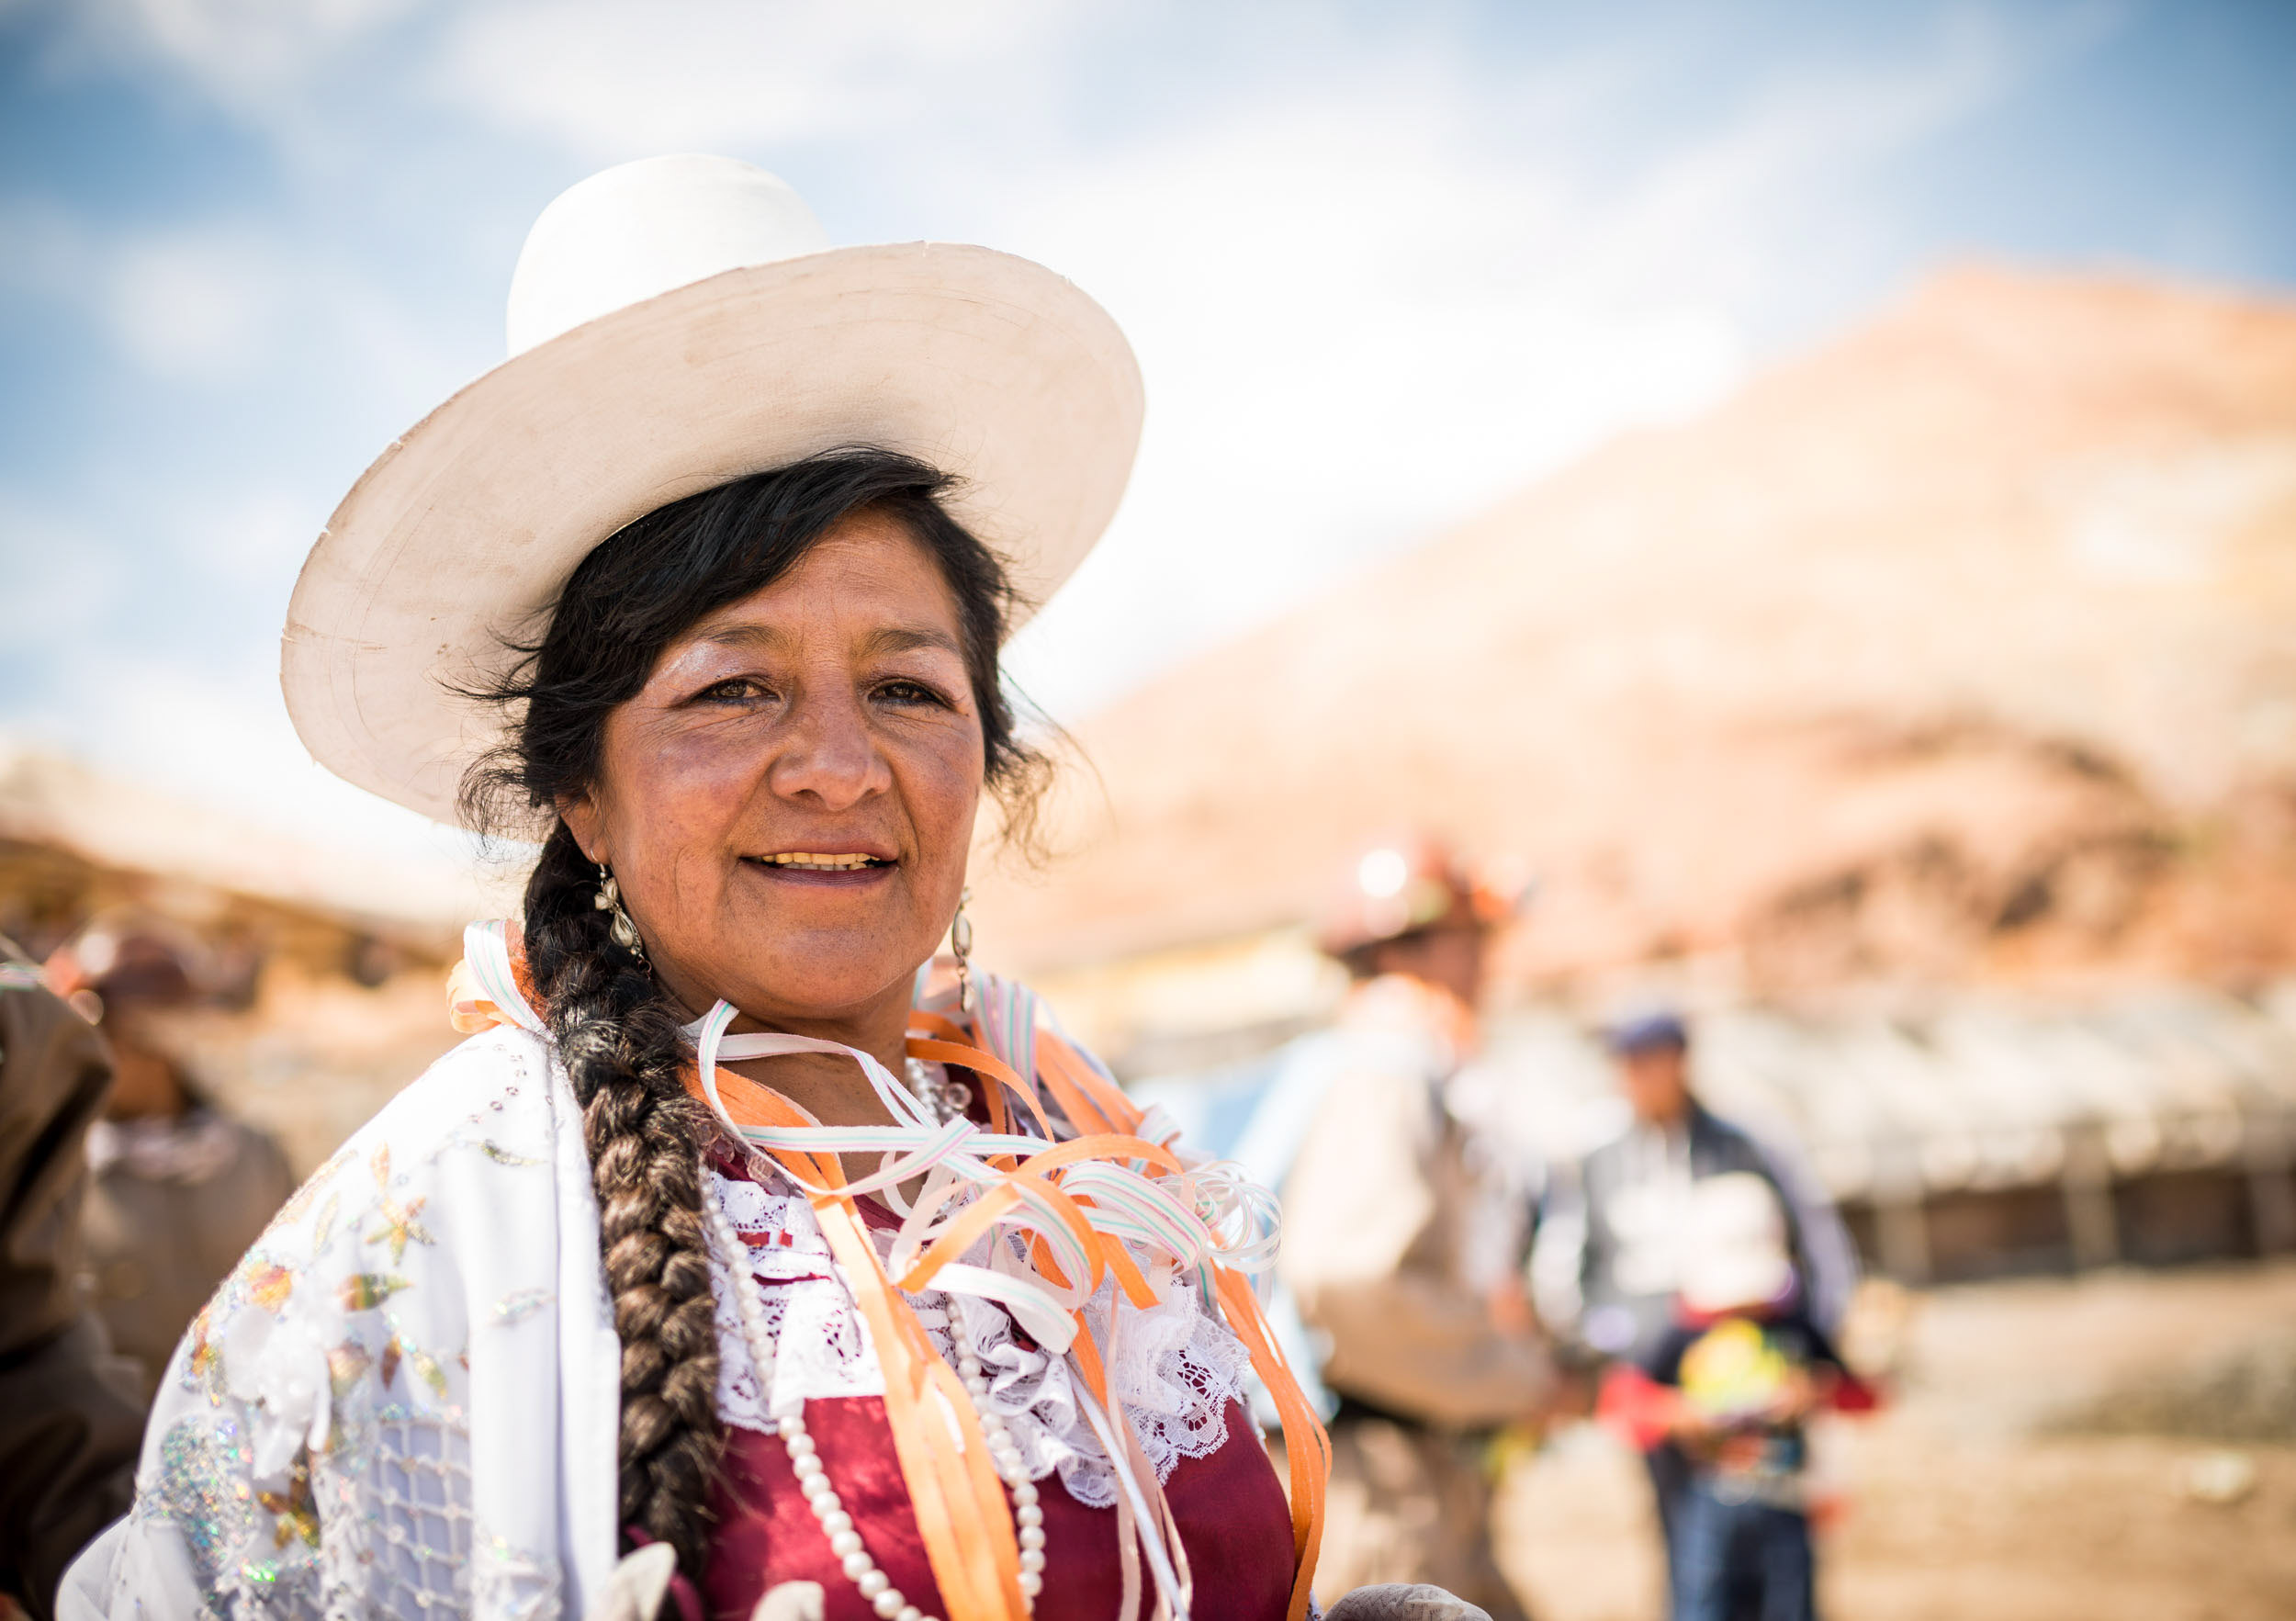 traditional-miners-carnival-potosi-portrait-woman-hat-bolivia